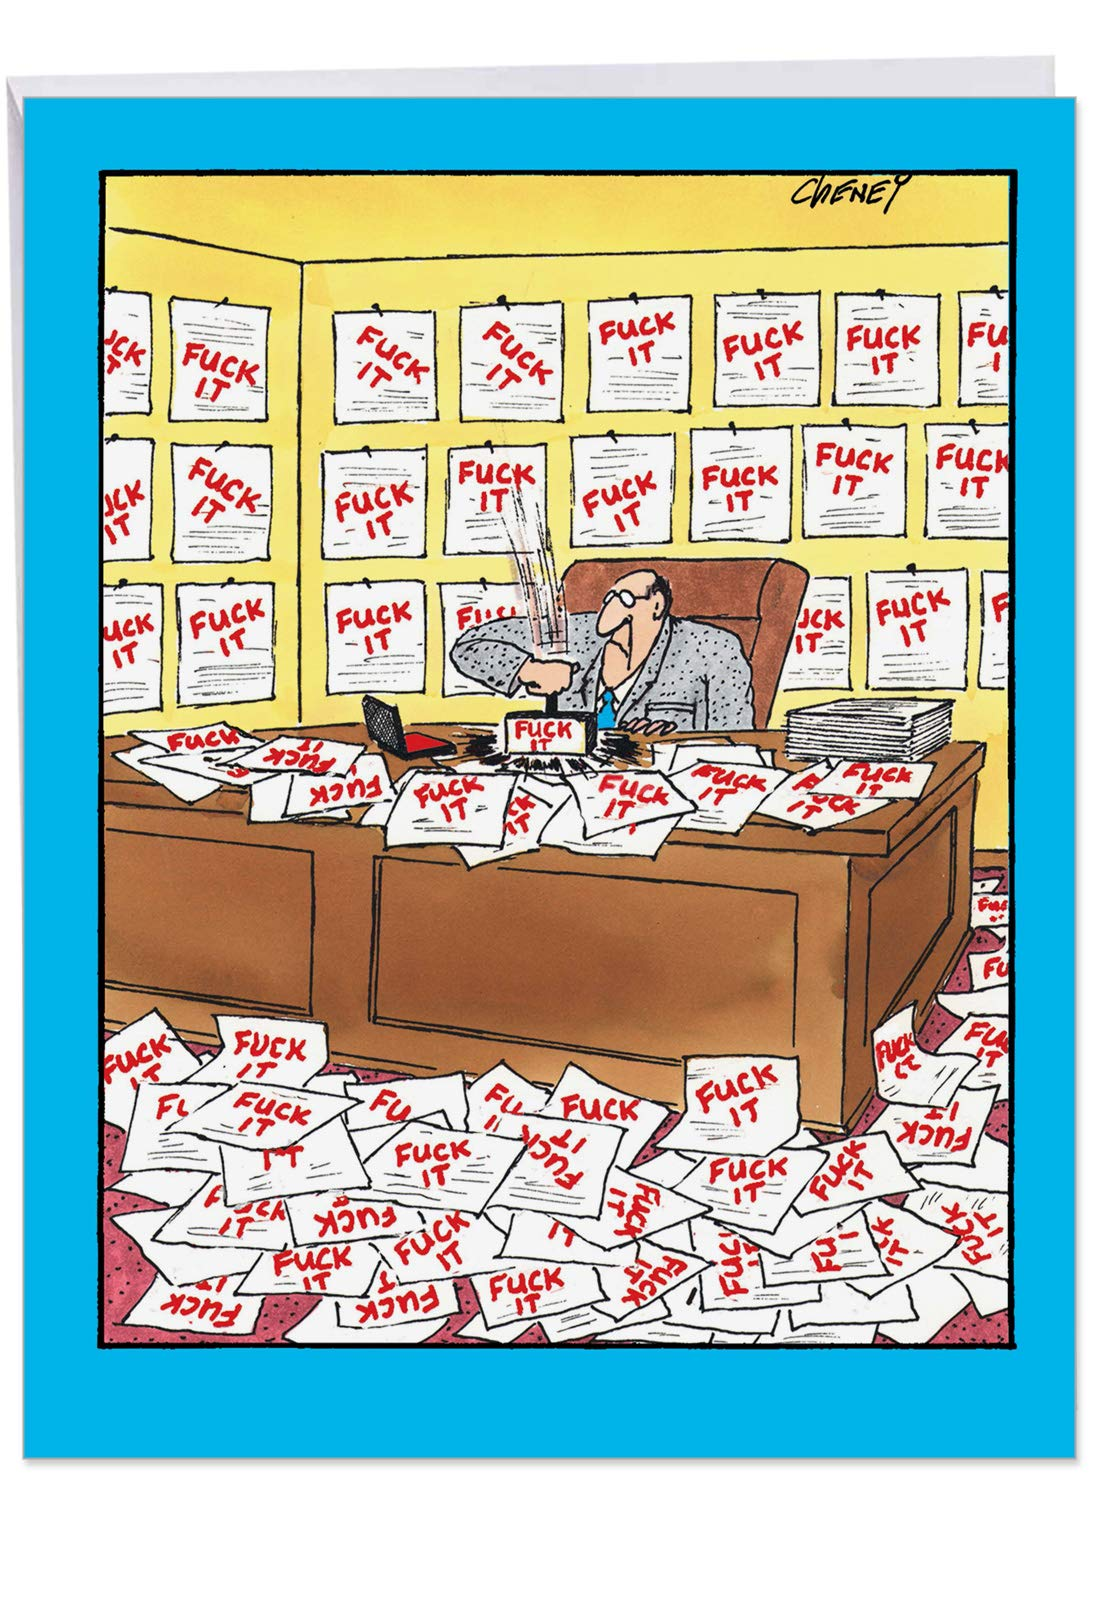 Man With Stamp Birthday' Big Greeting Card with Envelope 8.5 x 11 Inch - Office Work Funny Cartoons, F-ck Paperwork Comic Art Stationery Set for Personalized Happy Bday Greetings and Wishes J4728